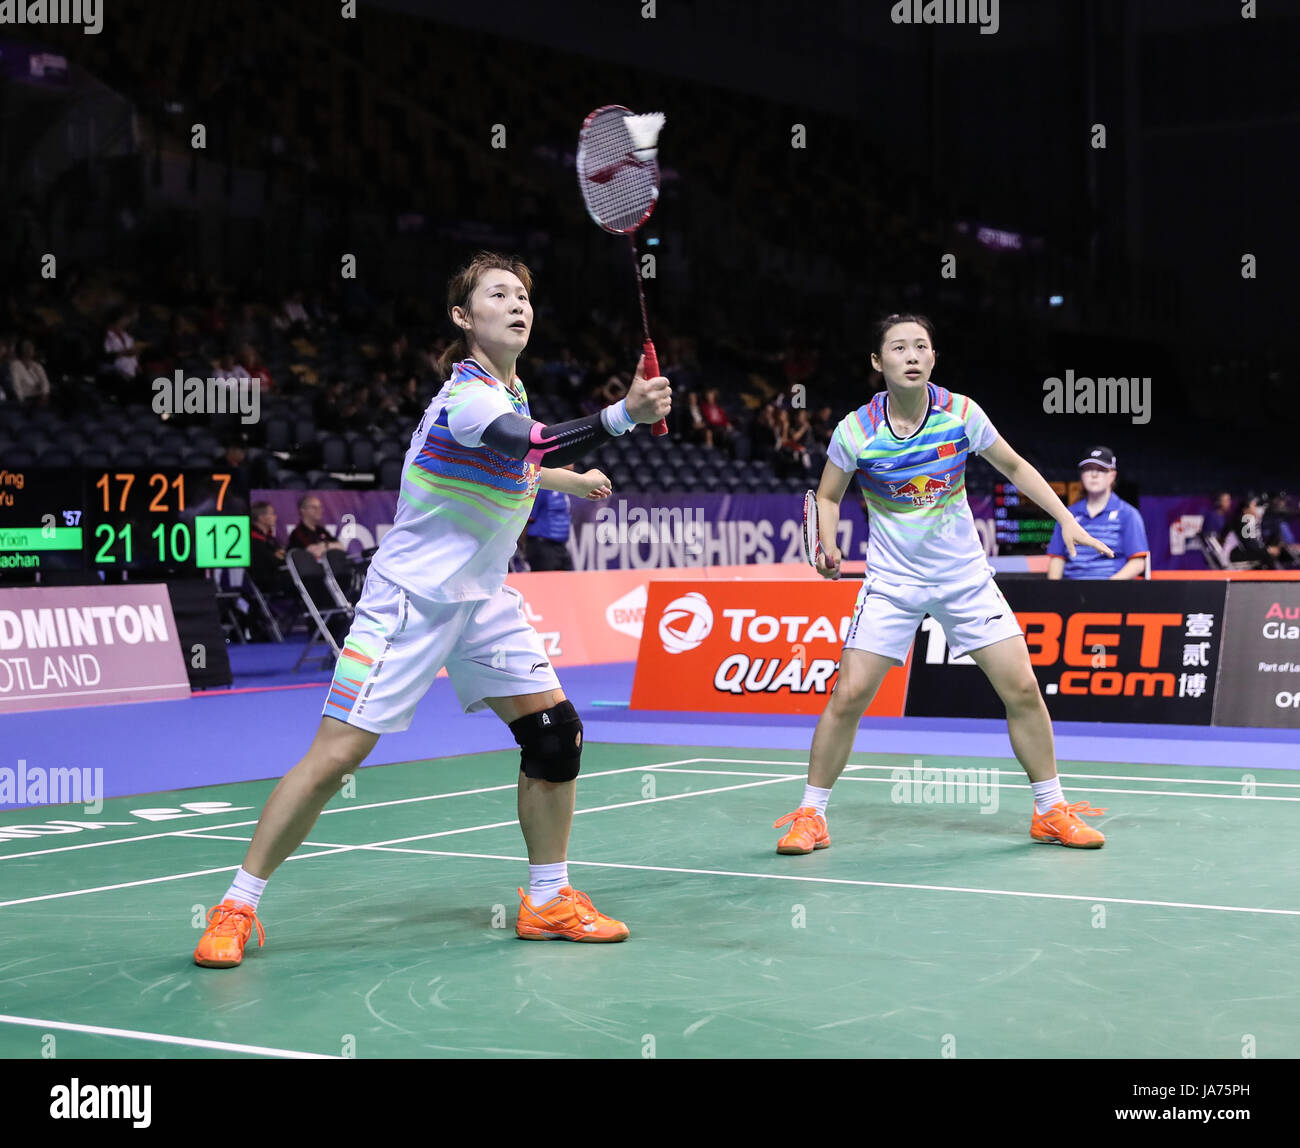 GLASGOW Aug 25 2017 Xinhua Luo Ying and Luo Yu